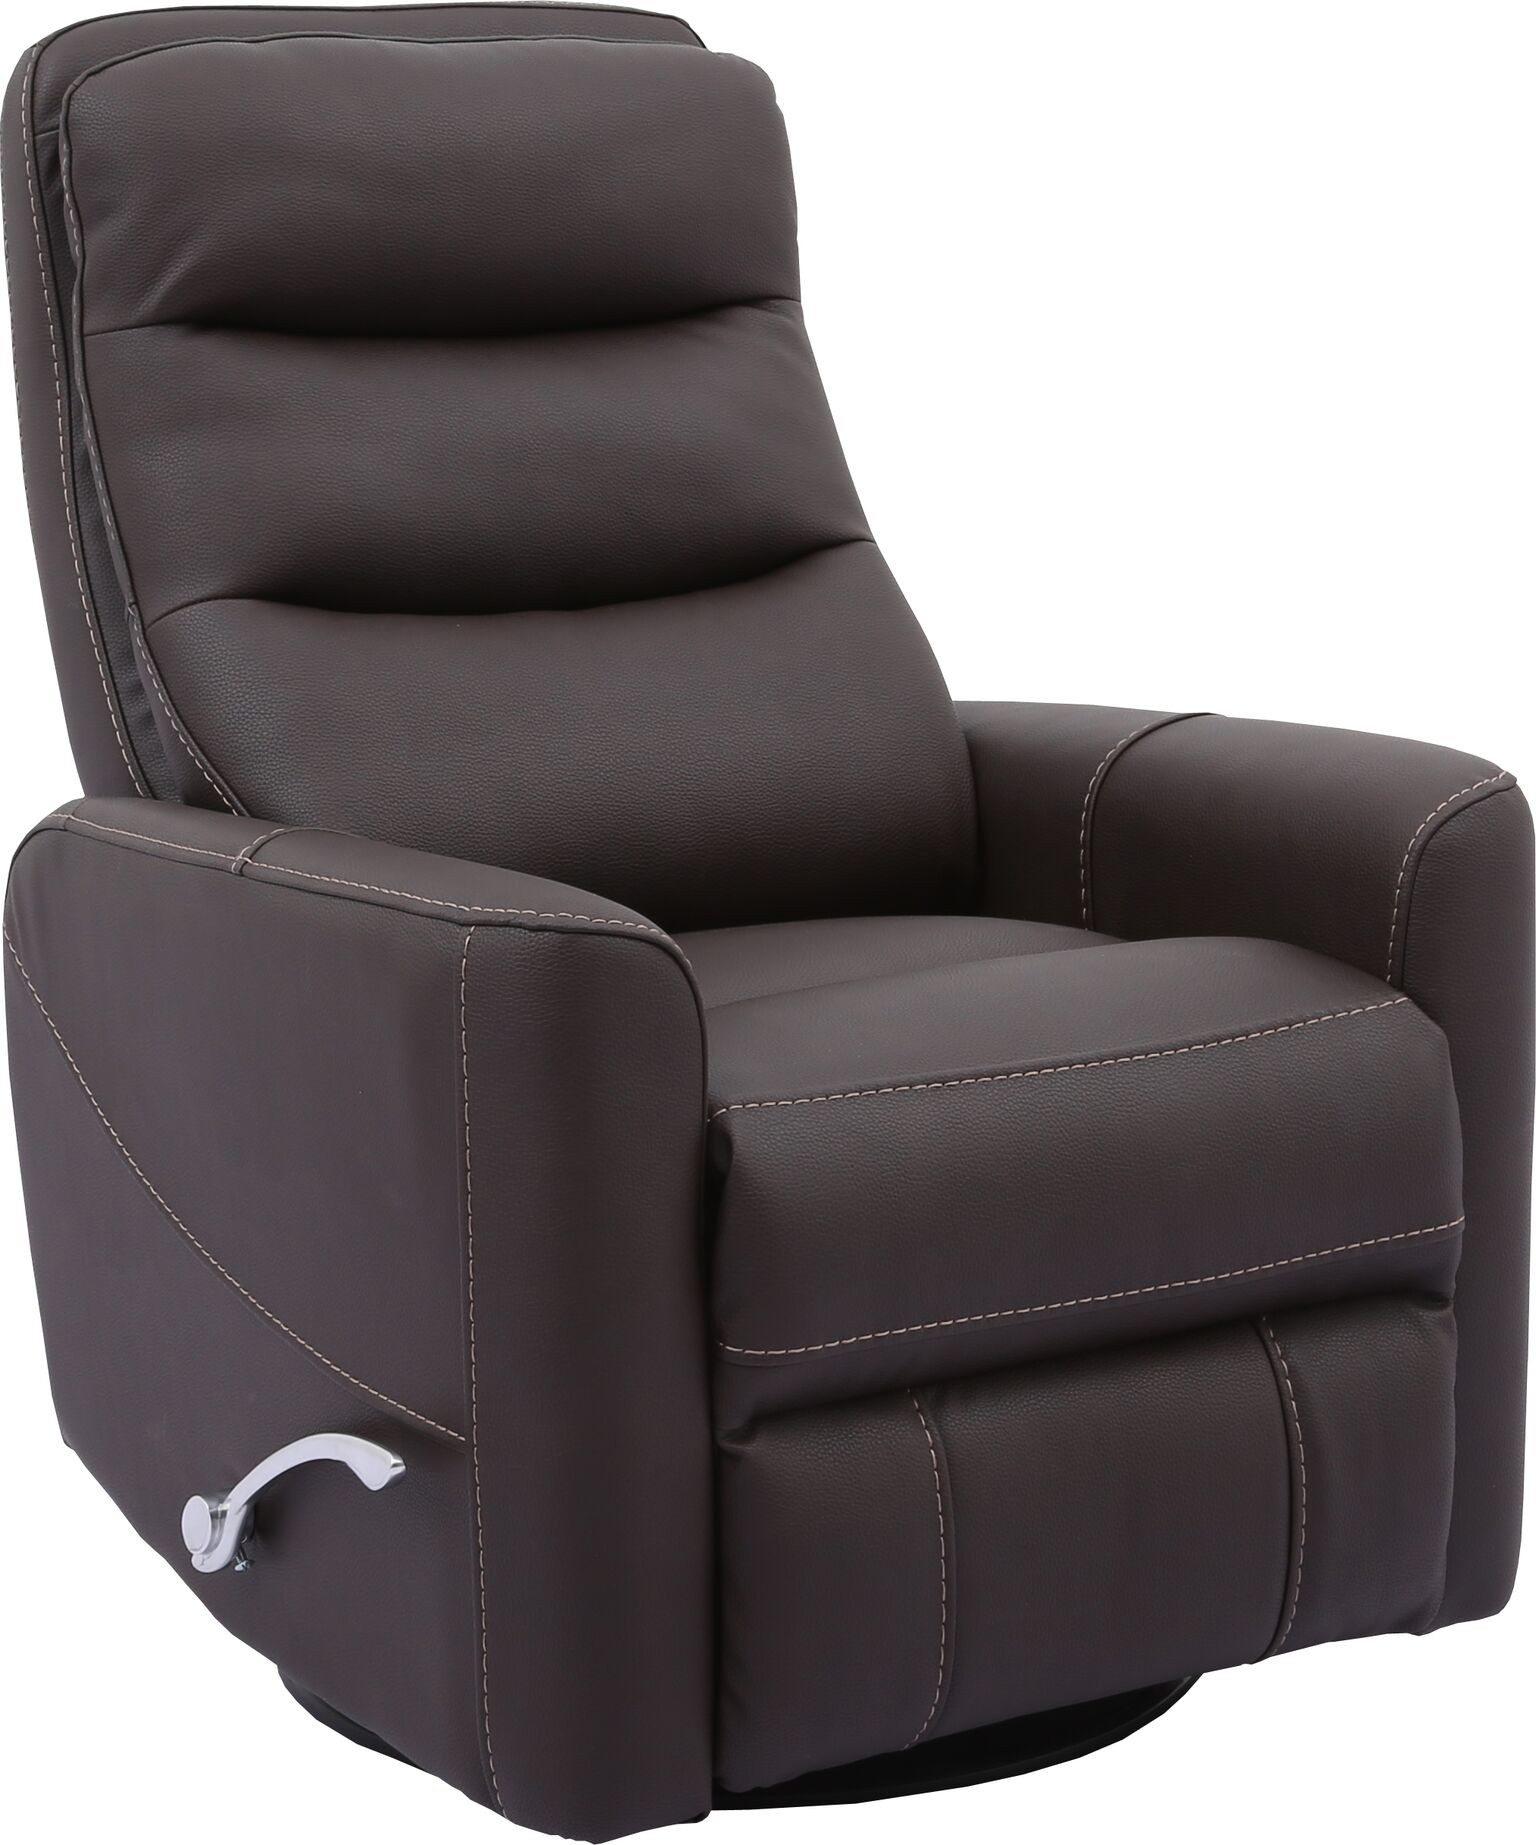 Hercules  Chocolate  Swivel Glider Recliner With Articulating Headrest With Regard To Hercules Grey Swivel Glider Recliners (Photo 2 of 25)